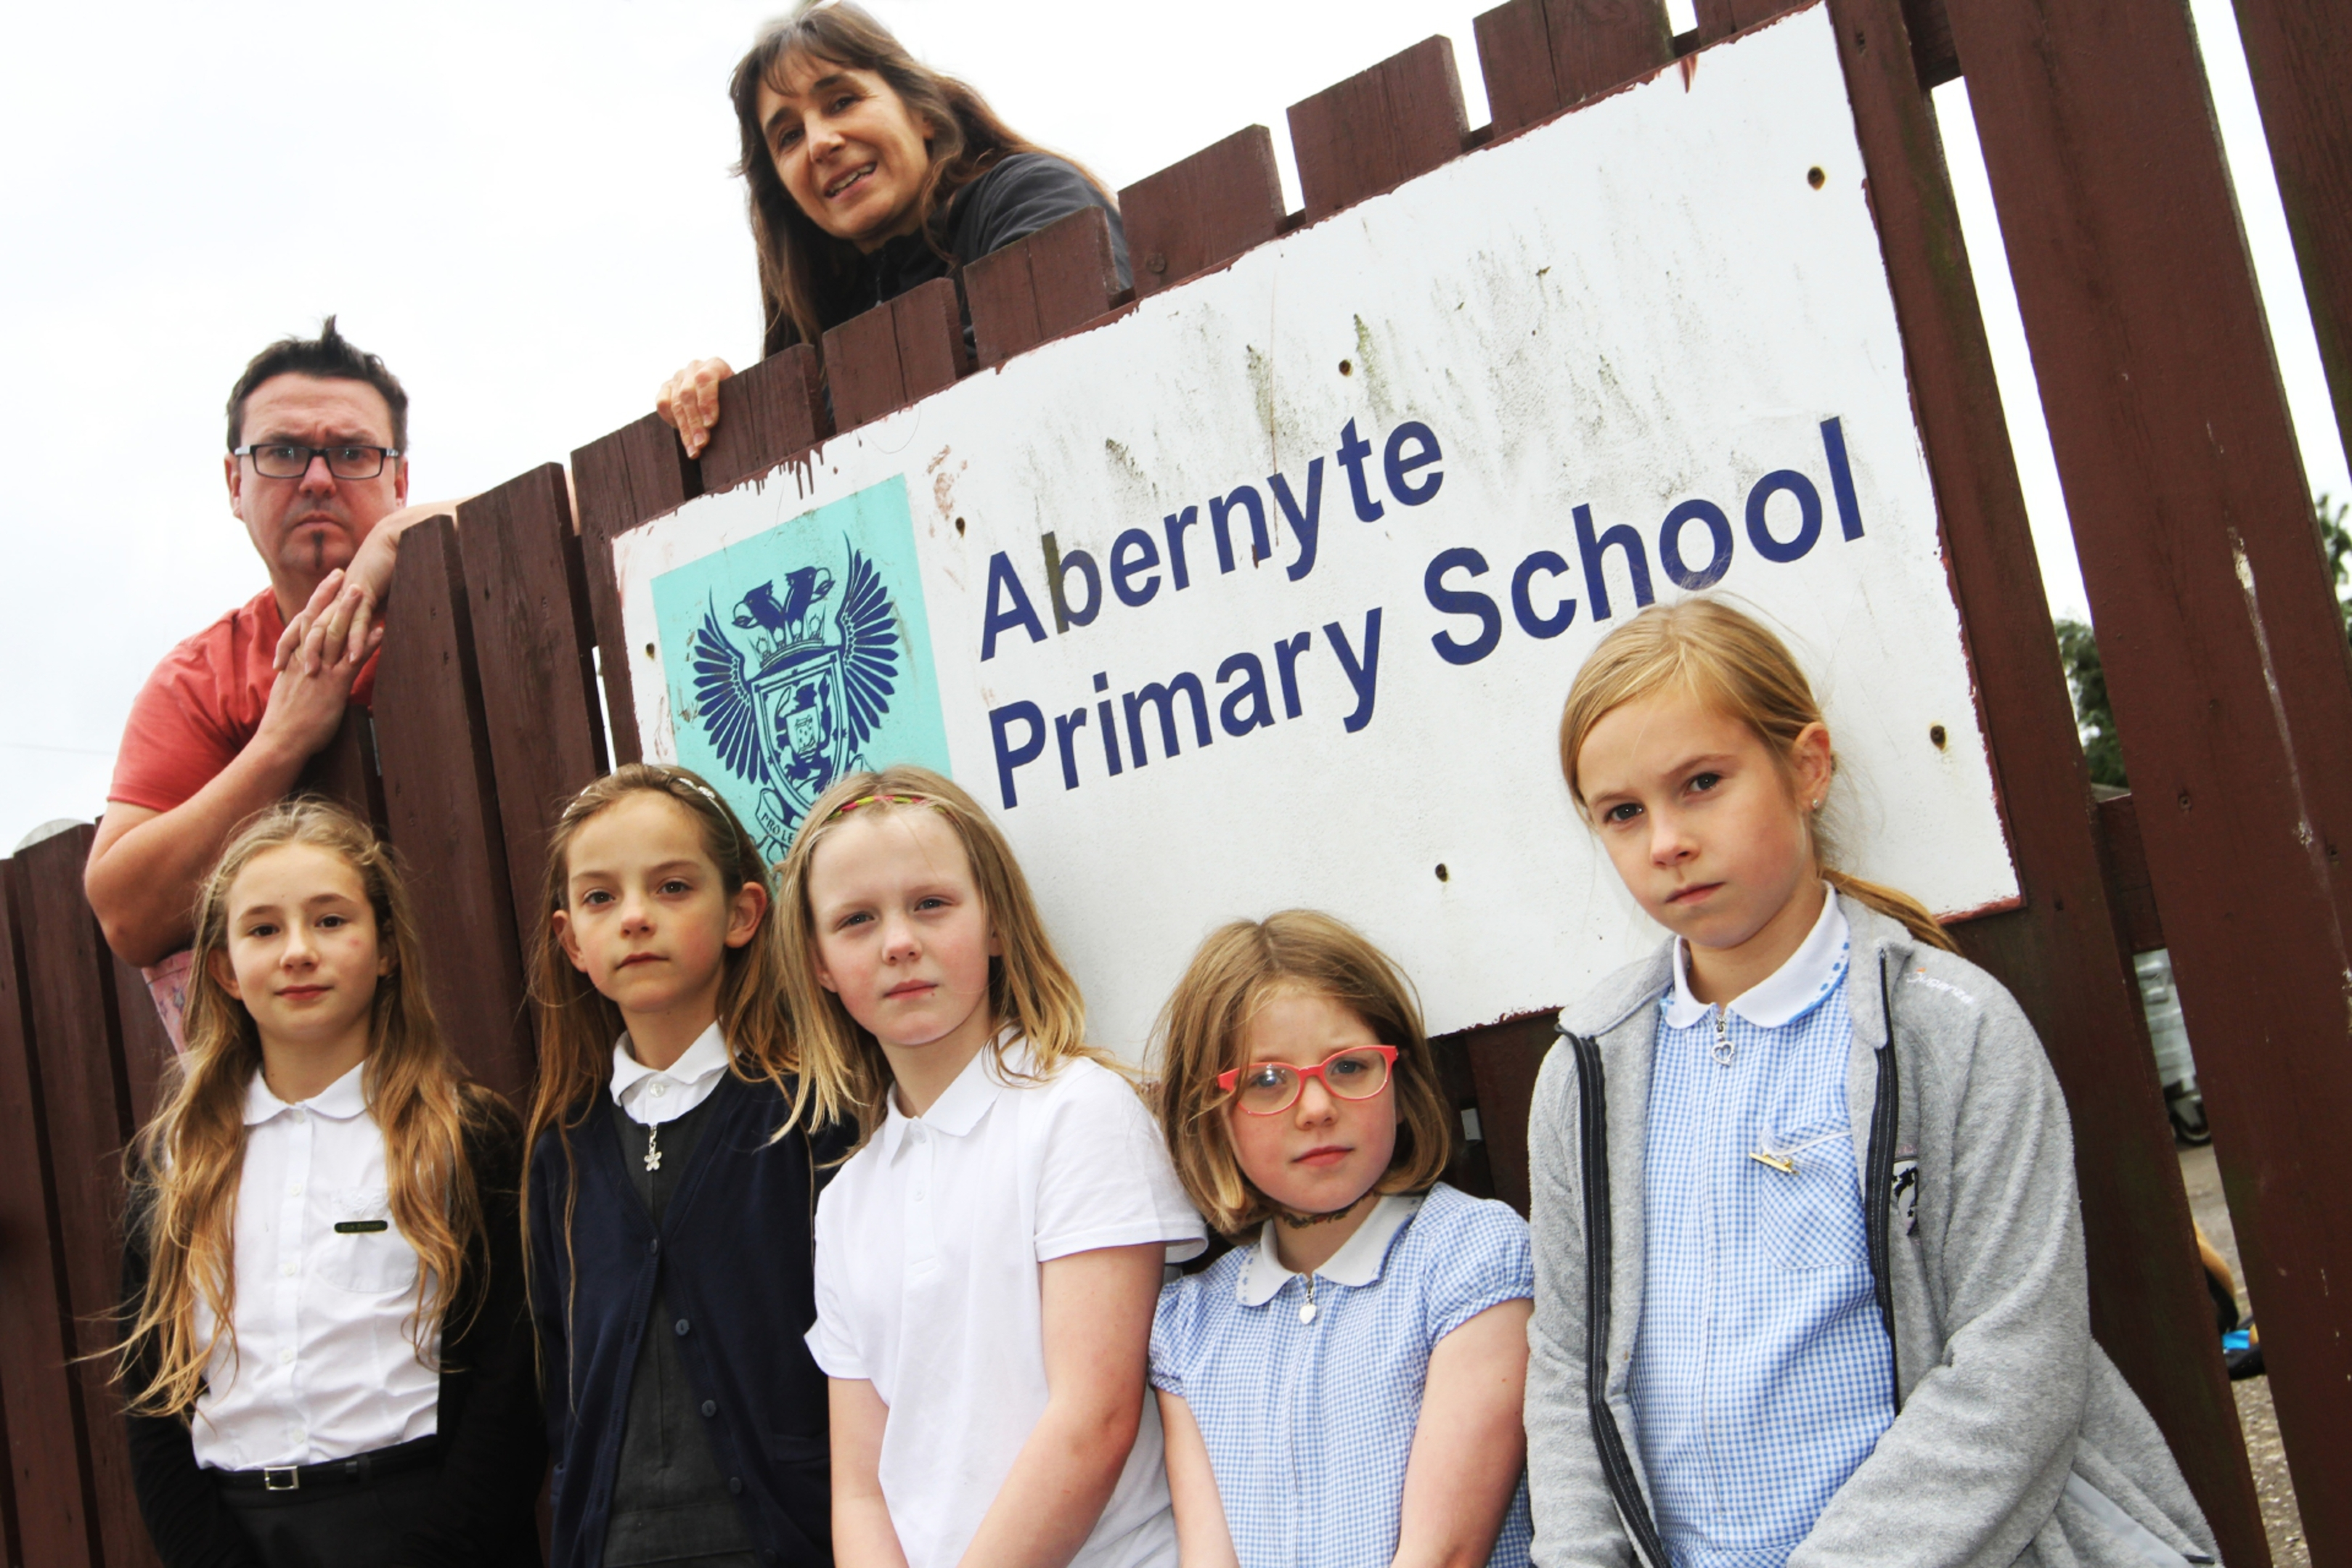 Chairman and Treasurer of the Parents Council Gerard McGoldrick and Claudia Lacoux with front l to r, Elle Lacoux, 10, Lucy MacGregor, 8, Anna McGoldrick, 9, Bea Meldrum, 9, Maya King, 9.